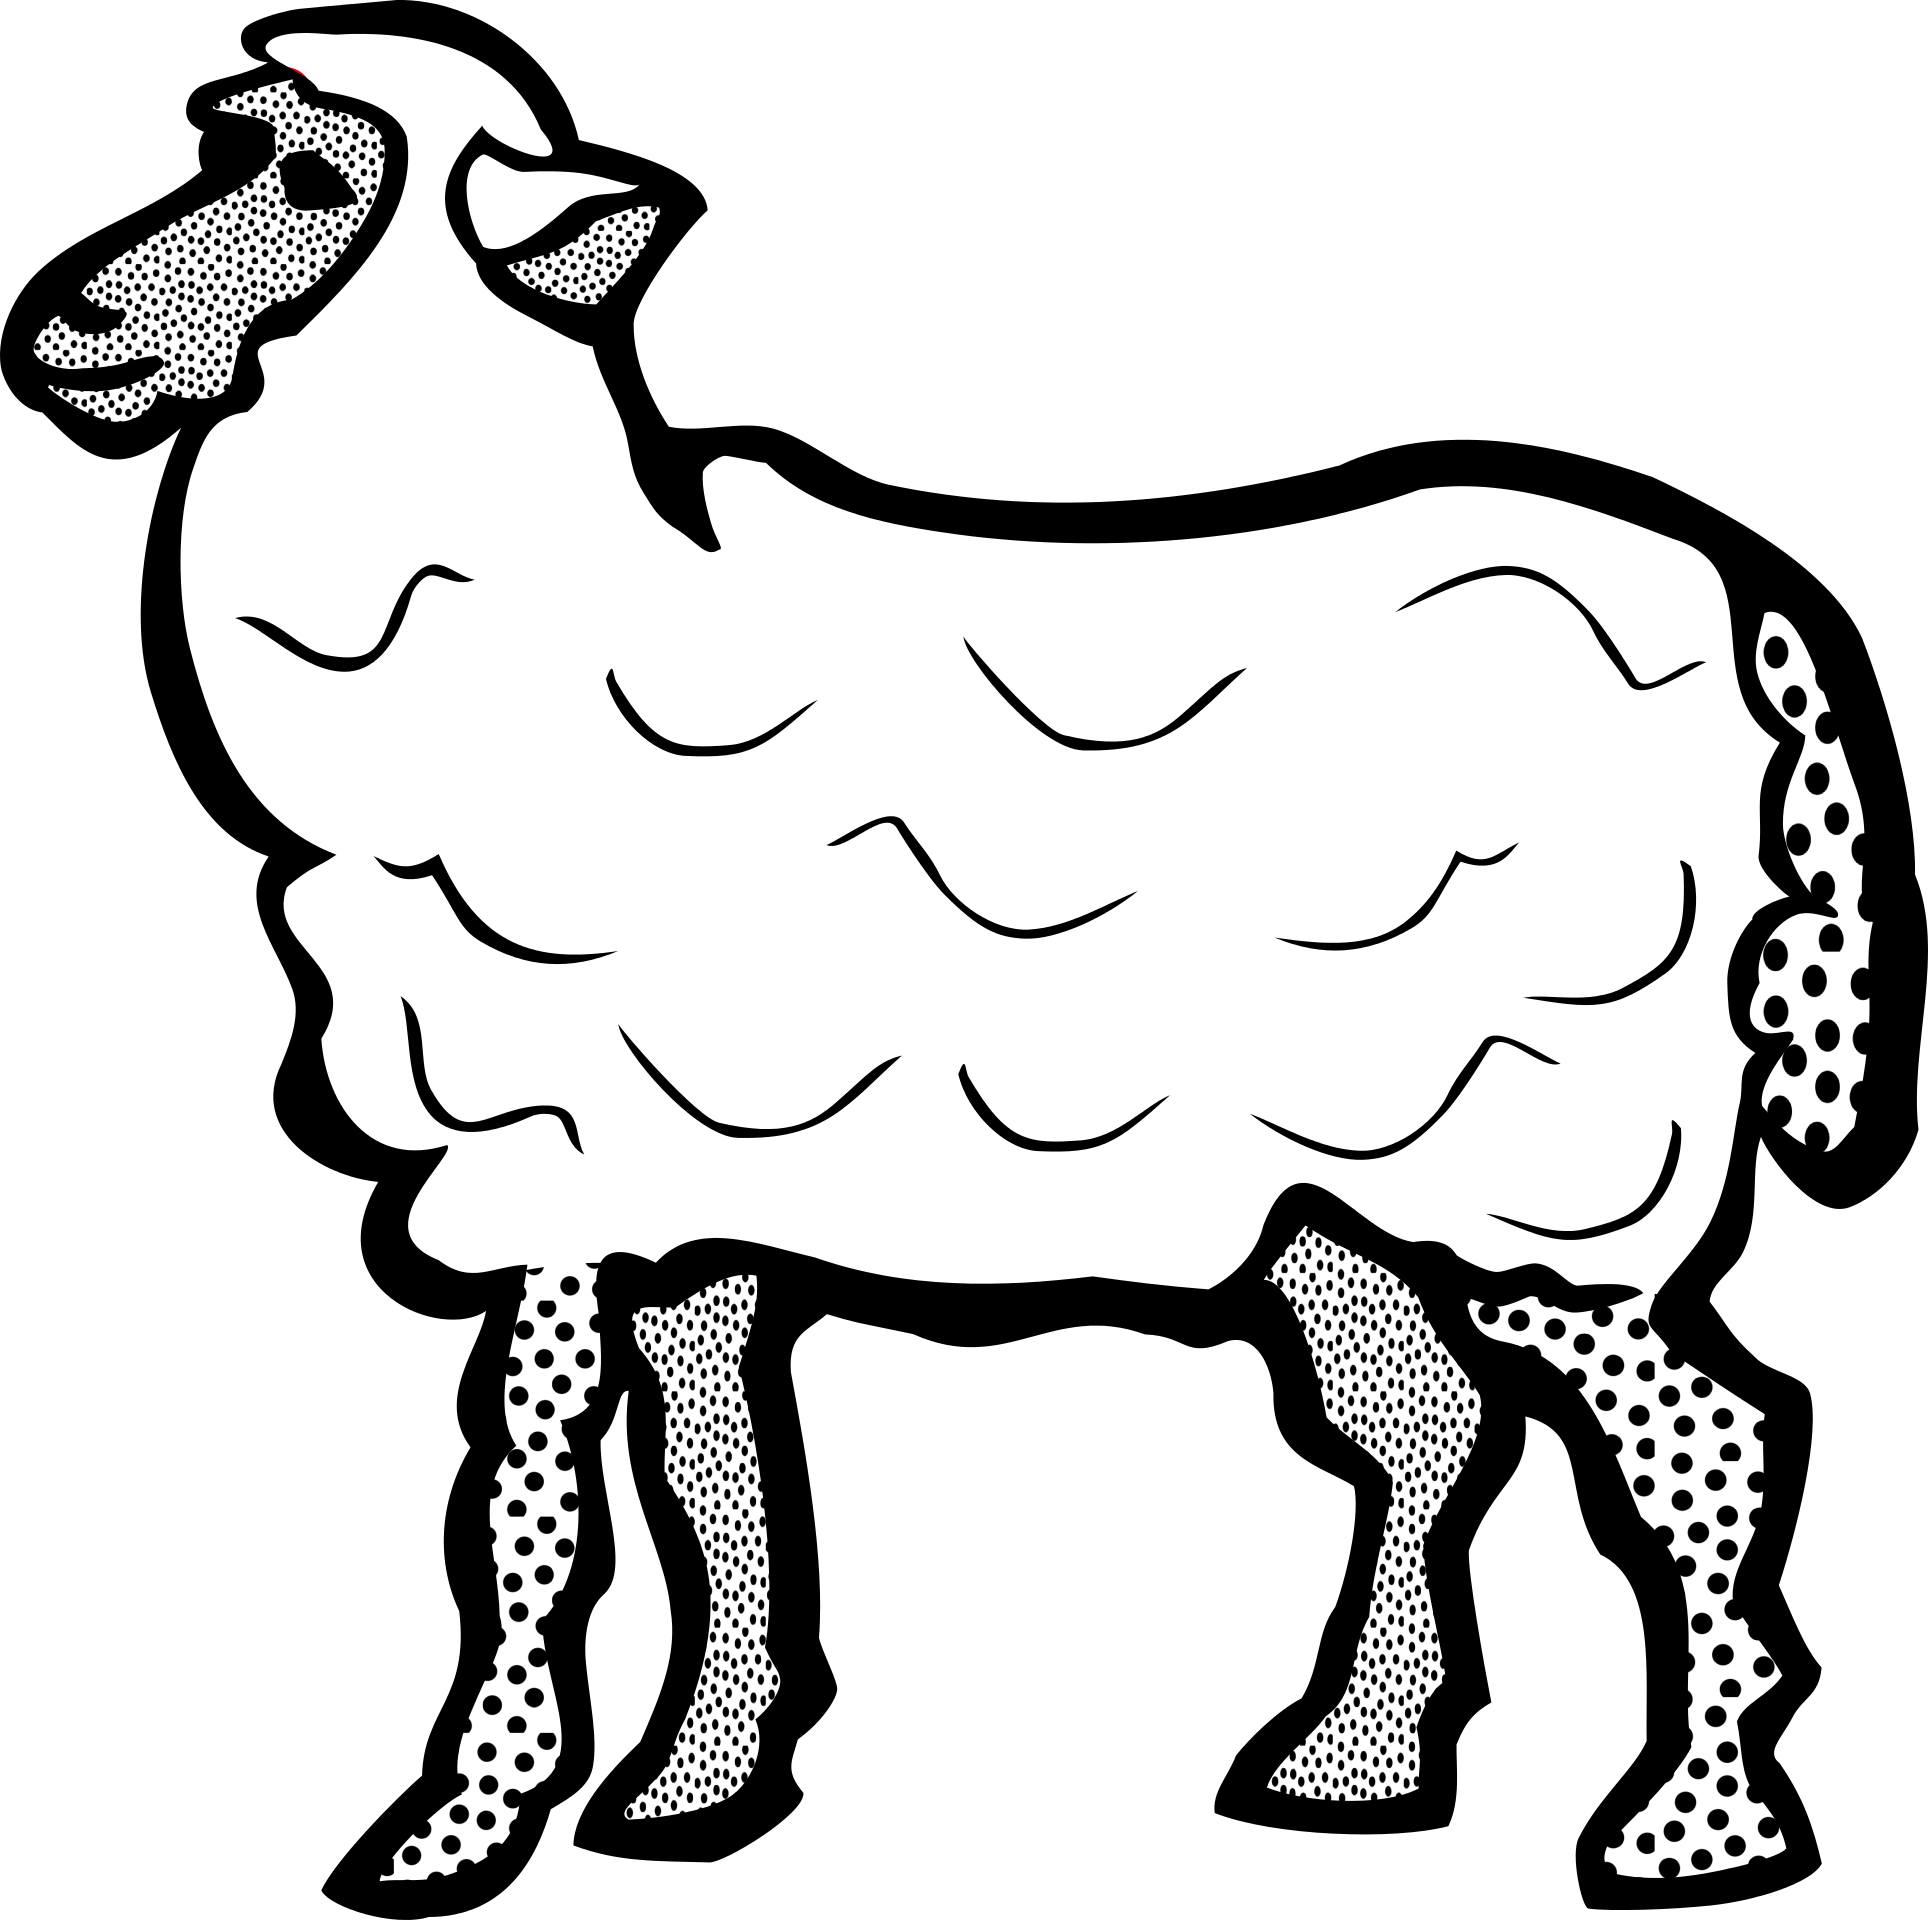 Drawing sheep farm animal. Black and white of